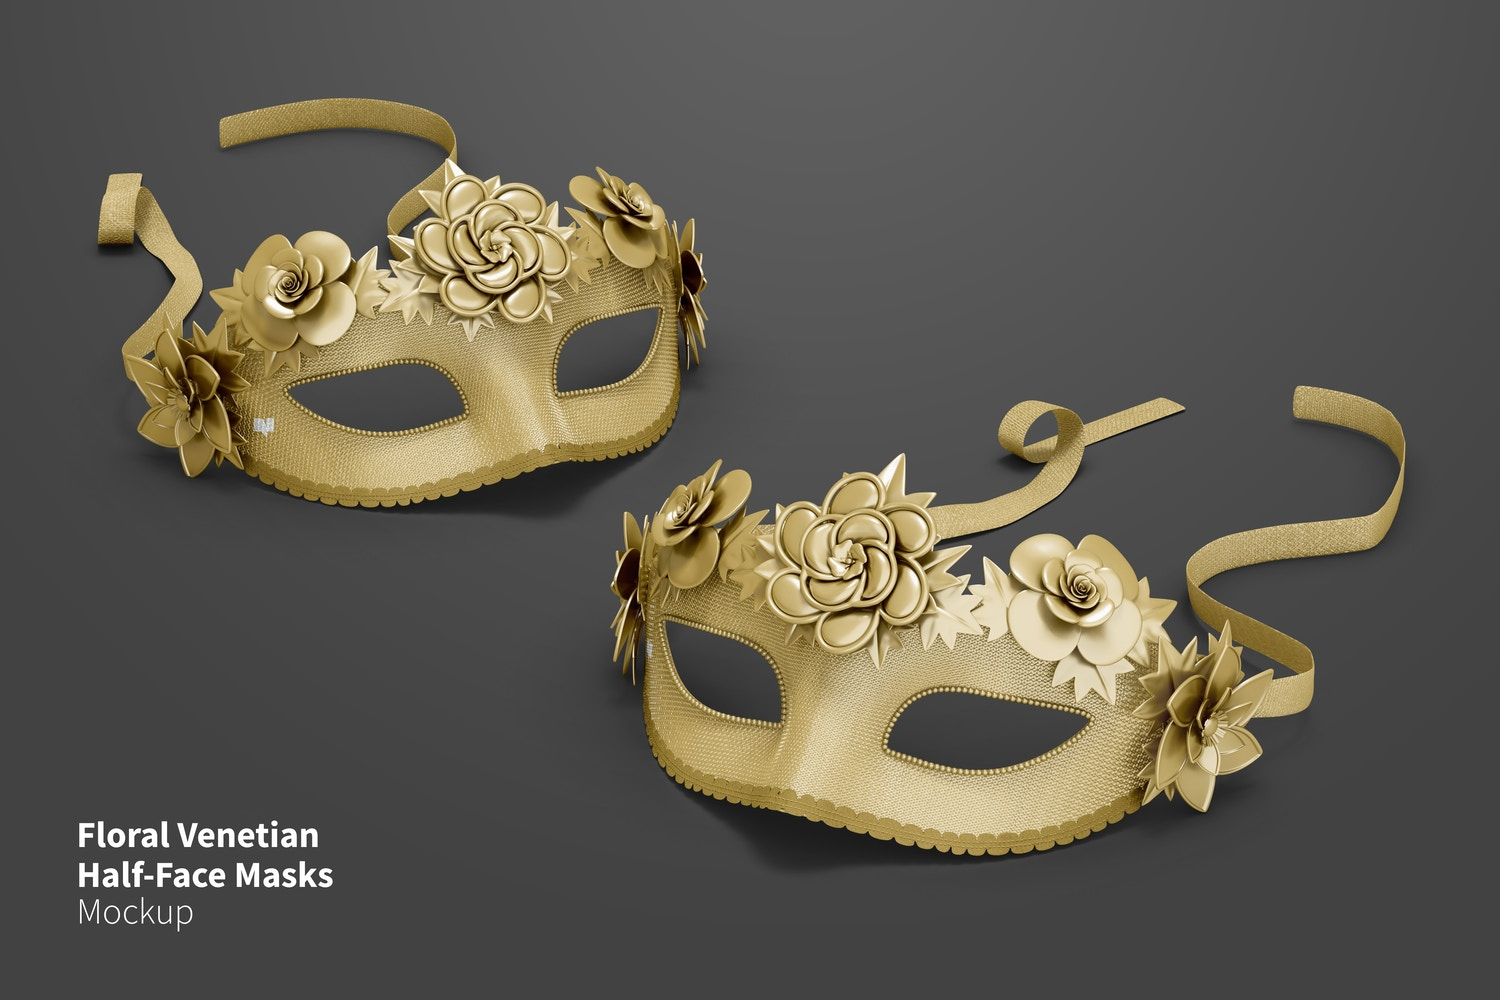 If you lean towards more classic tones, see how good this design looks in gold.